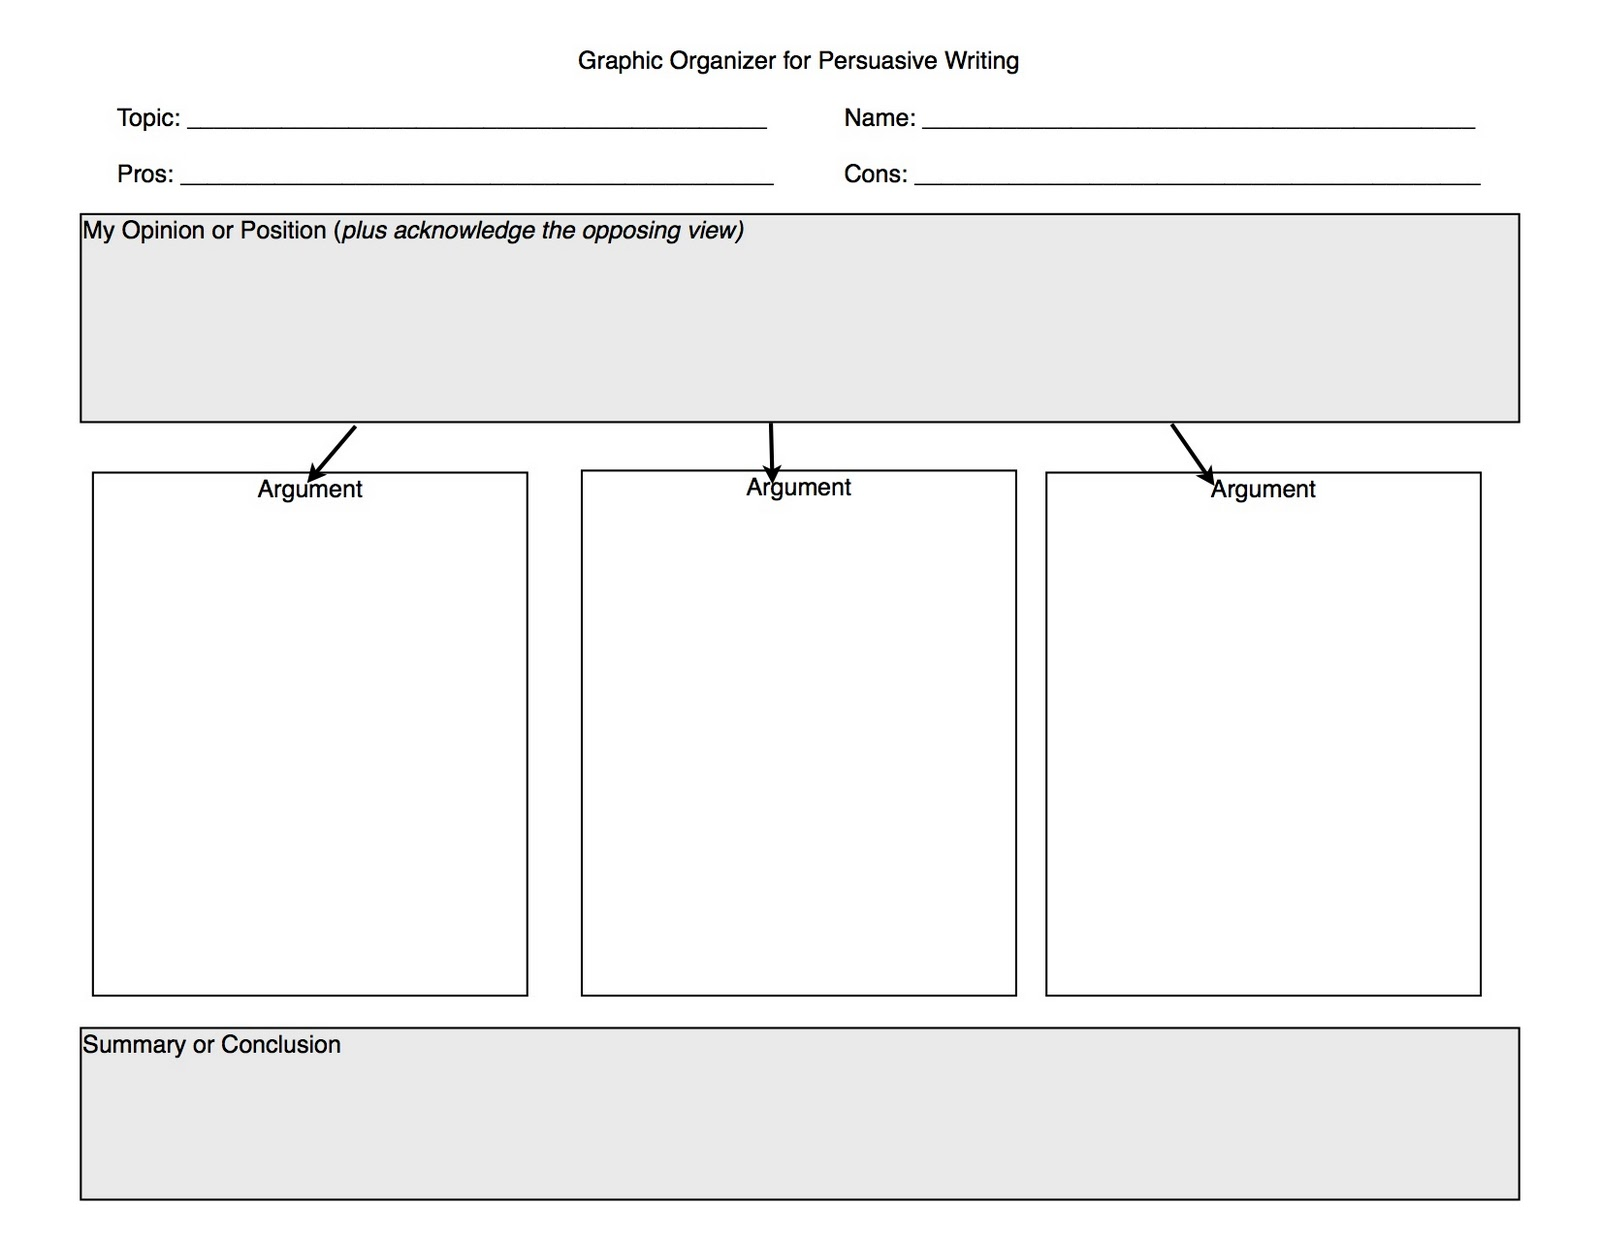 persuasive writing graphic organizer for middle school persuasive writing graphic organizer for middle school persuasive writing graphic organizers saeger middle school home uncategorized